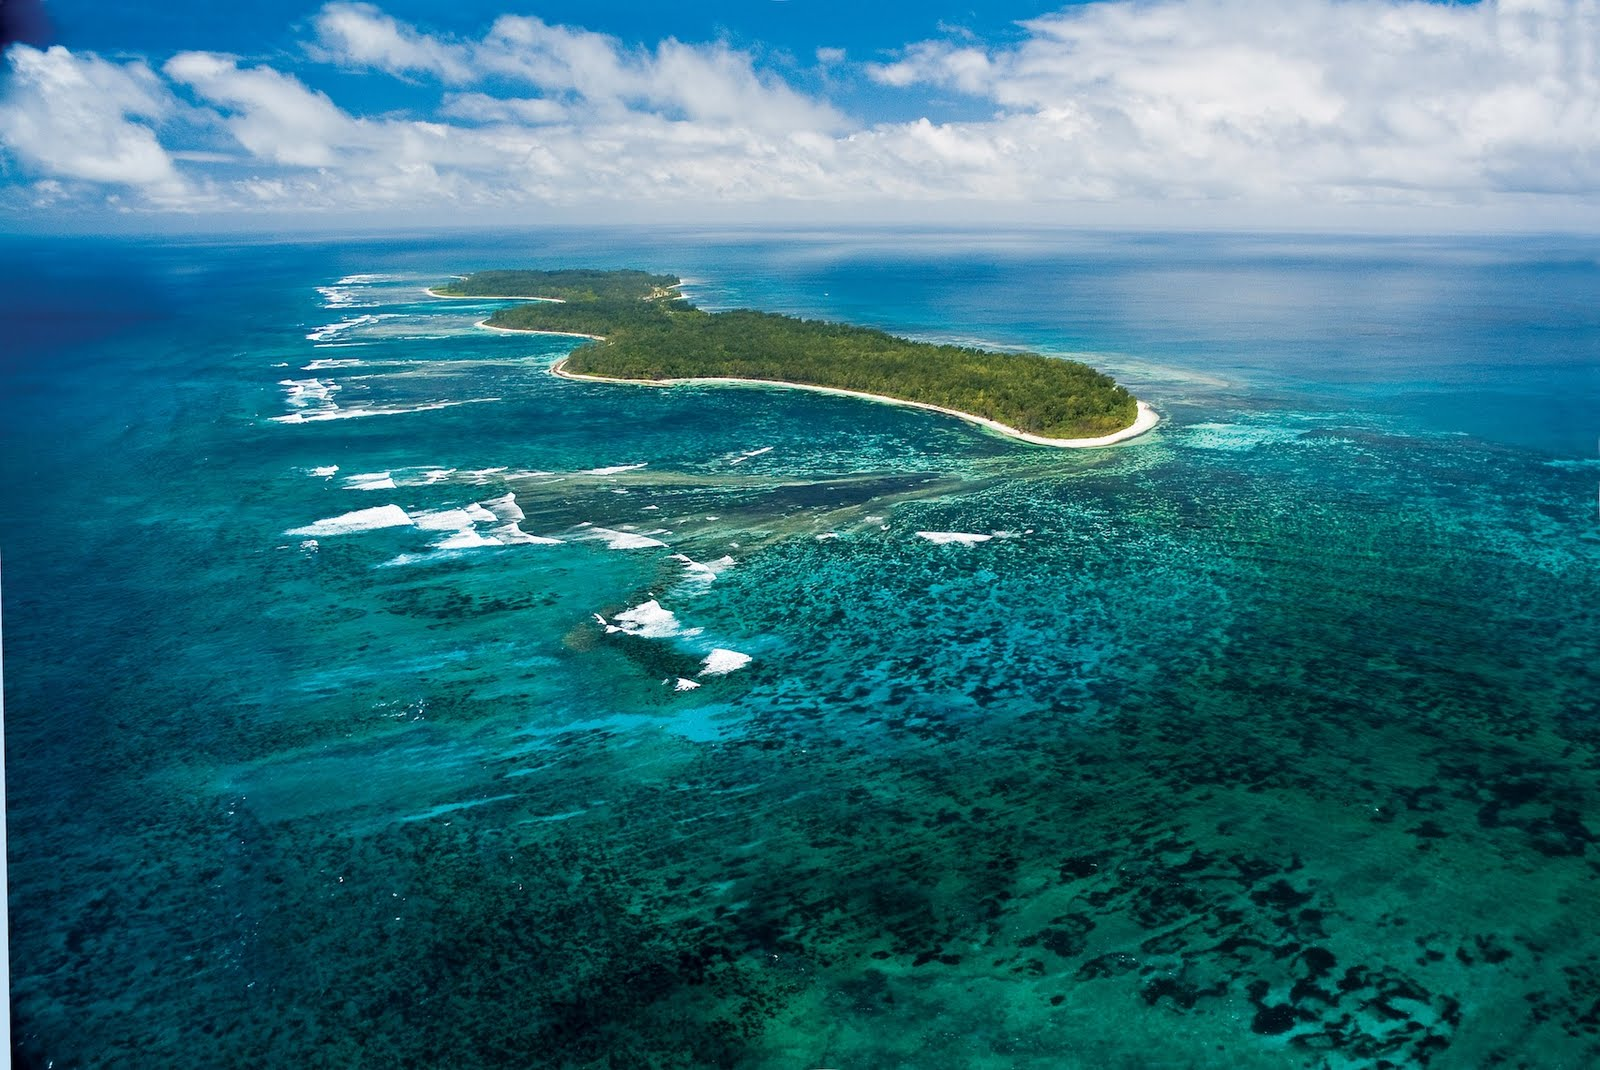 Seychelles Islands Seychelles  City new picture : island in seychelles desroches island in the seychelles islands ...